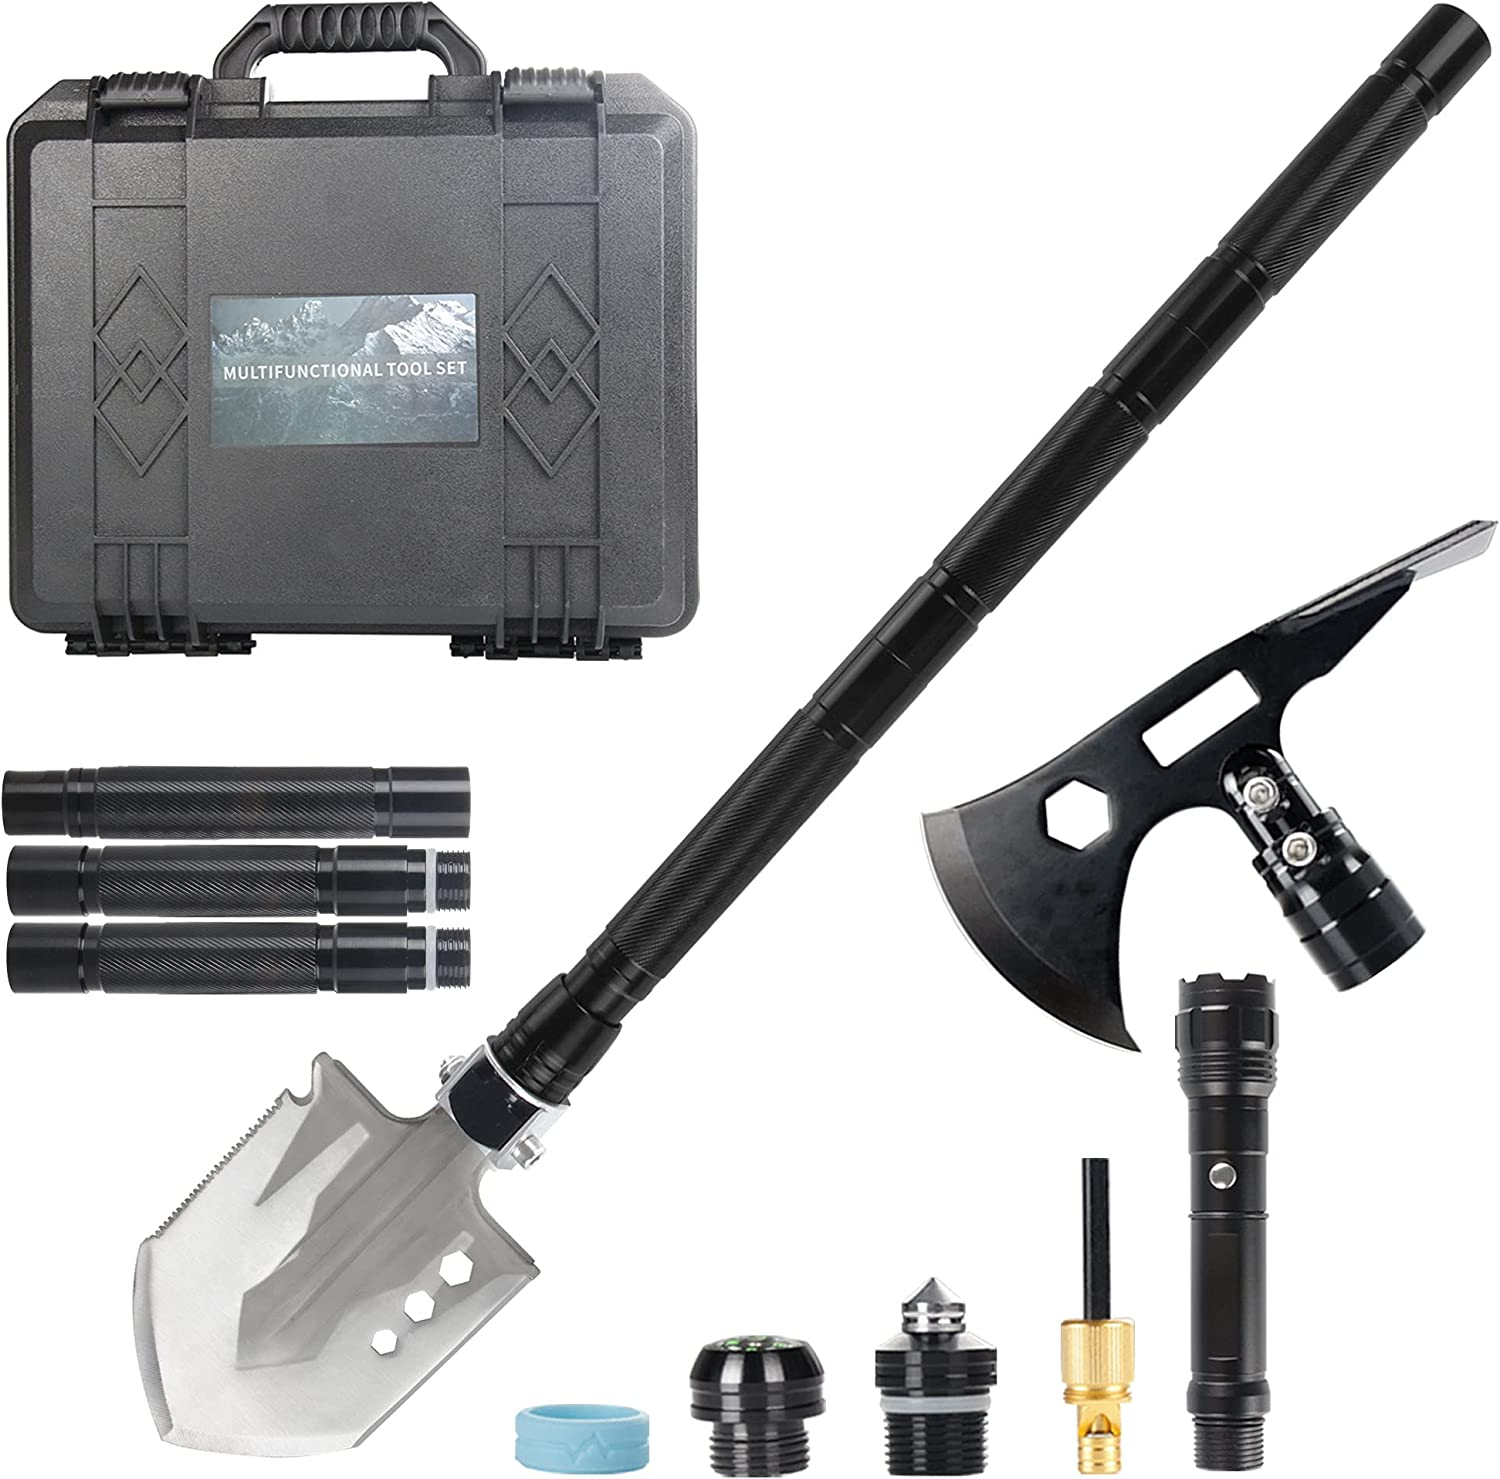 Clearance SALE Over item handling ☆ Limited time The7boX Portable Survival Shovel Camping with Box Folding